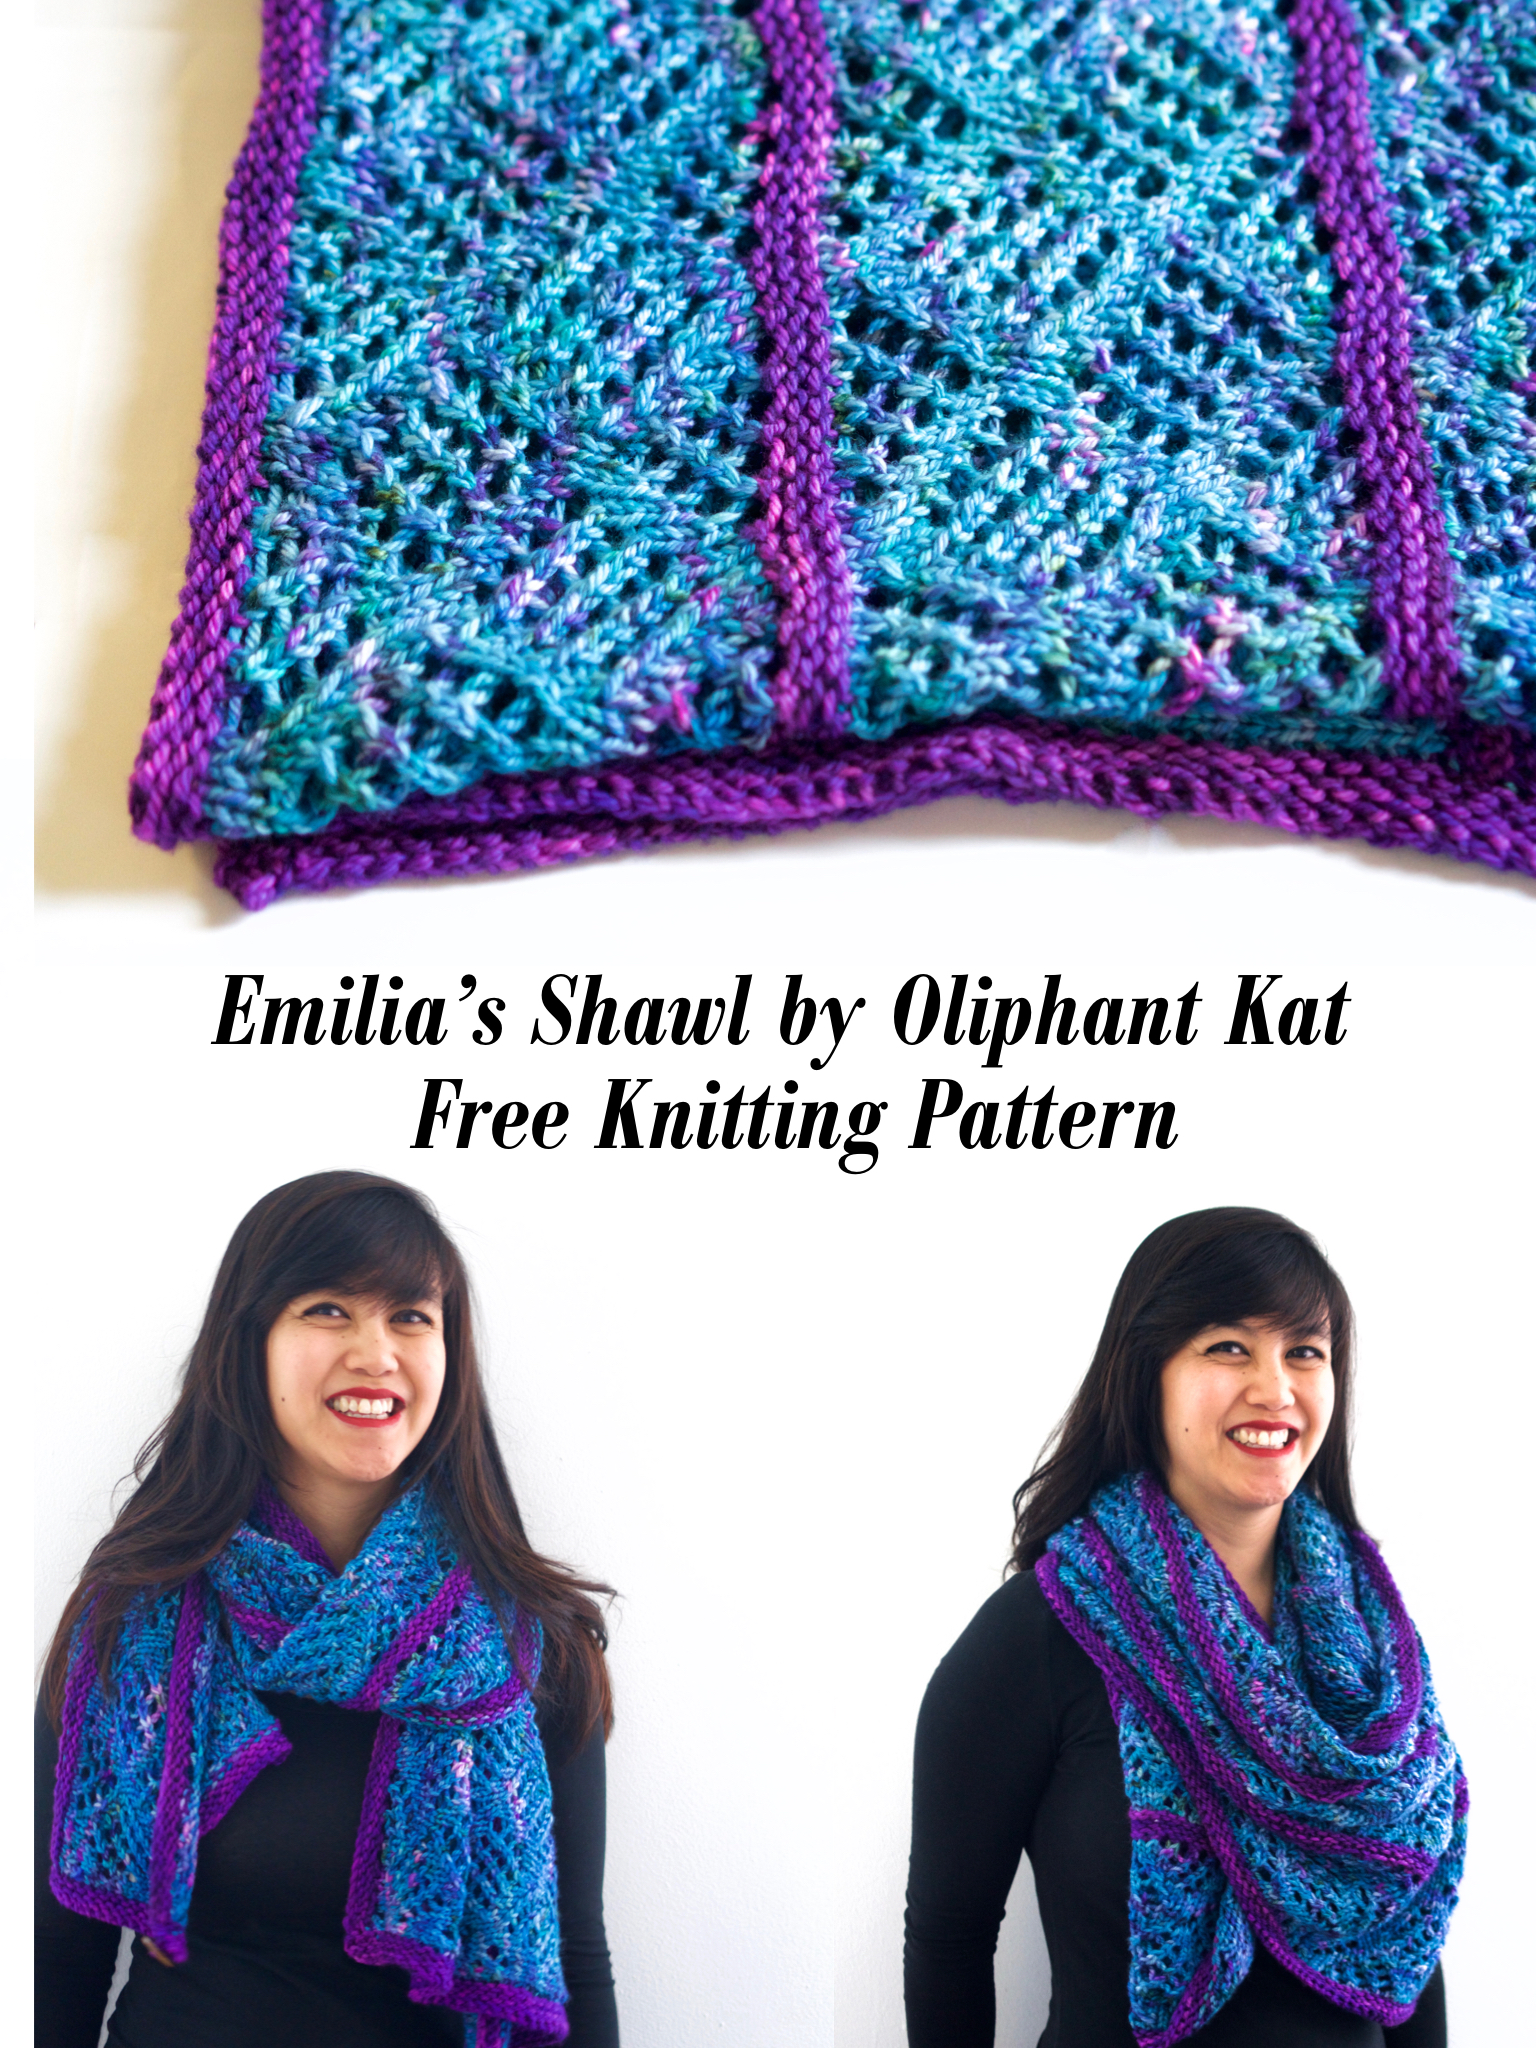 Oliphant Kat Nursing Shawl Free Knitting Pattern — Stitch & Hustle